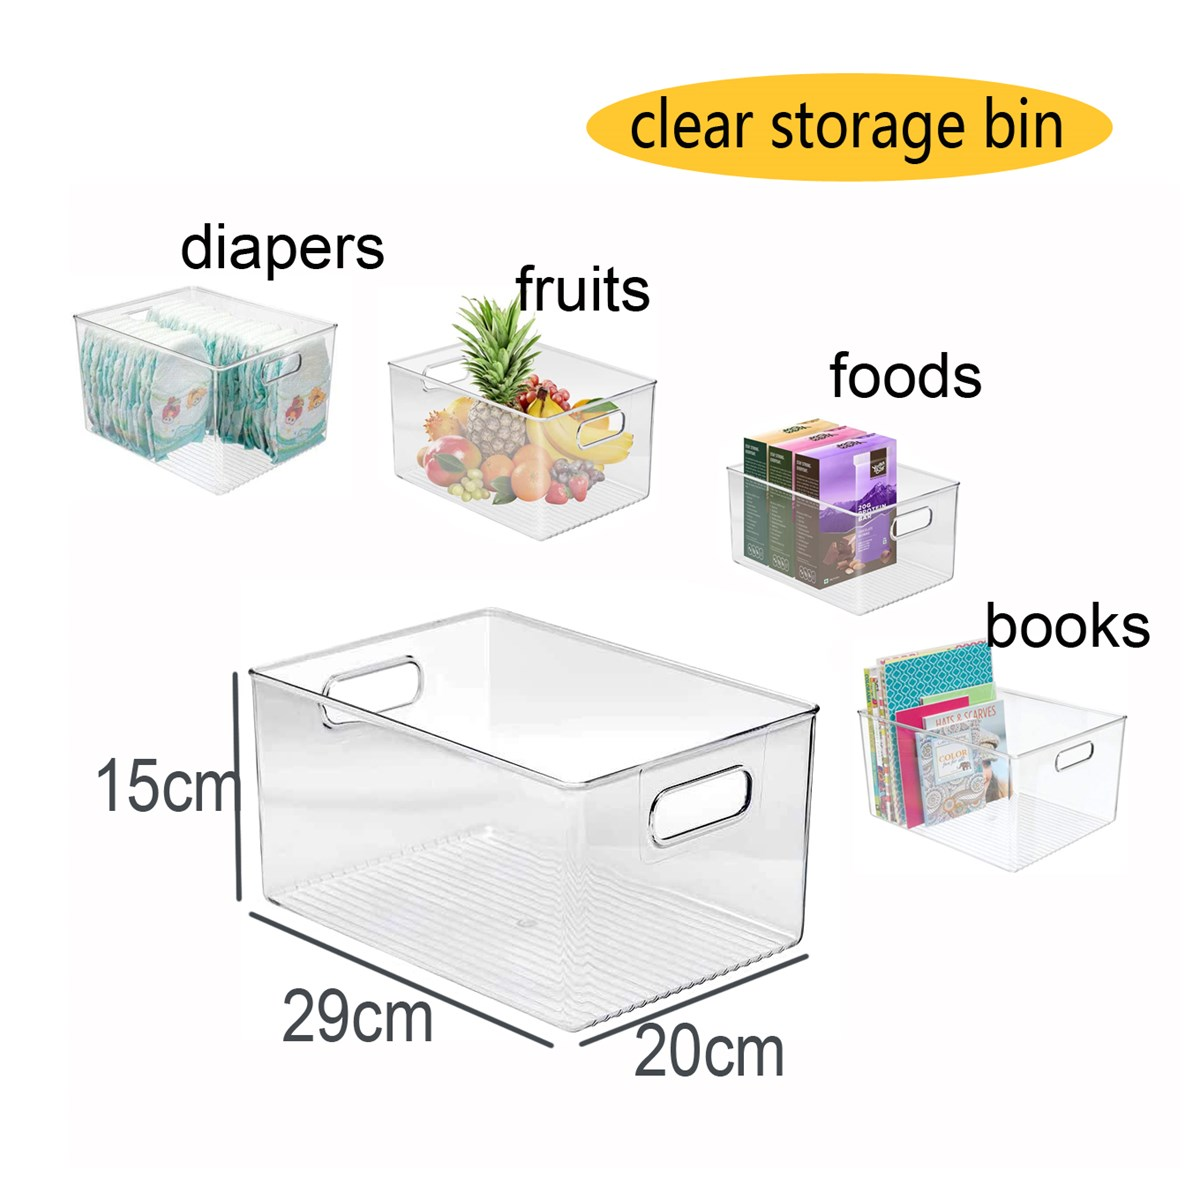 Plastic Clear Storage Bins Pantry Organizer Box Bin Containers for Organizing Kitchen Fridge Food Snack Pantry Cabinet